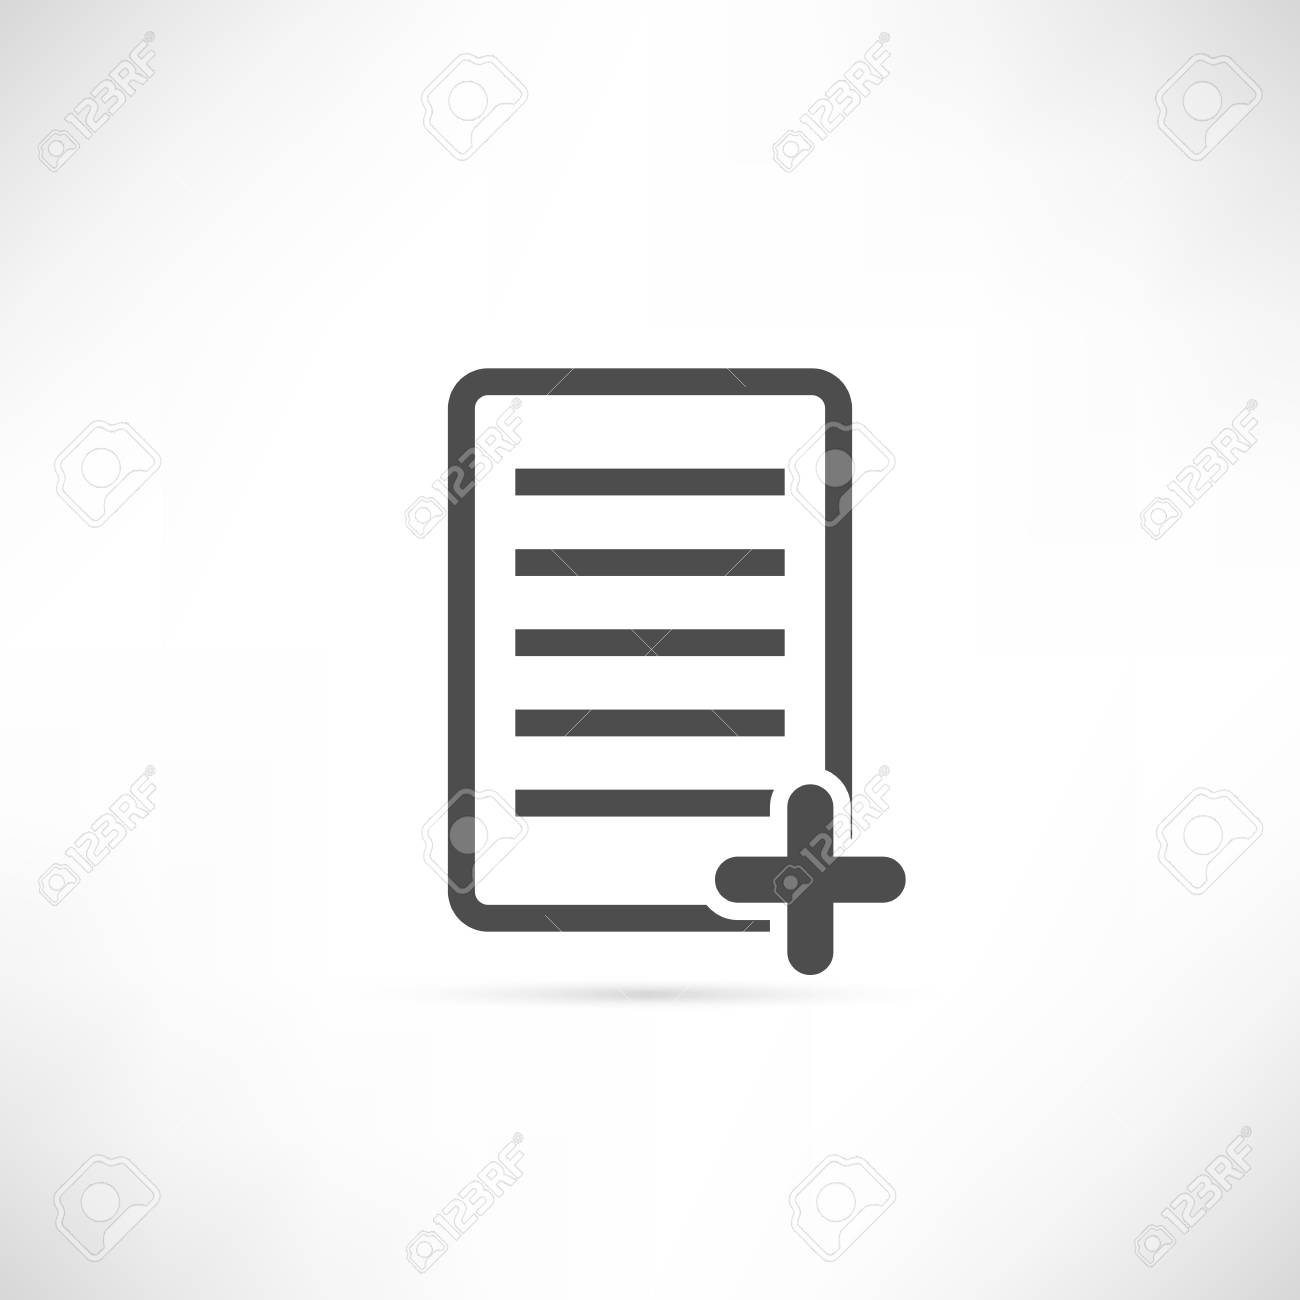 Text Or File Add Icon In Simple Outline Design Royalty Free